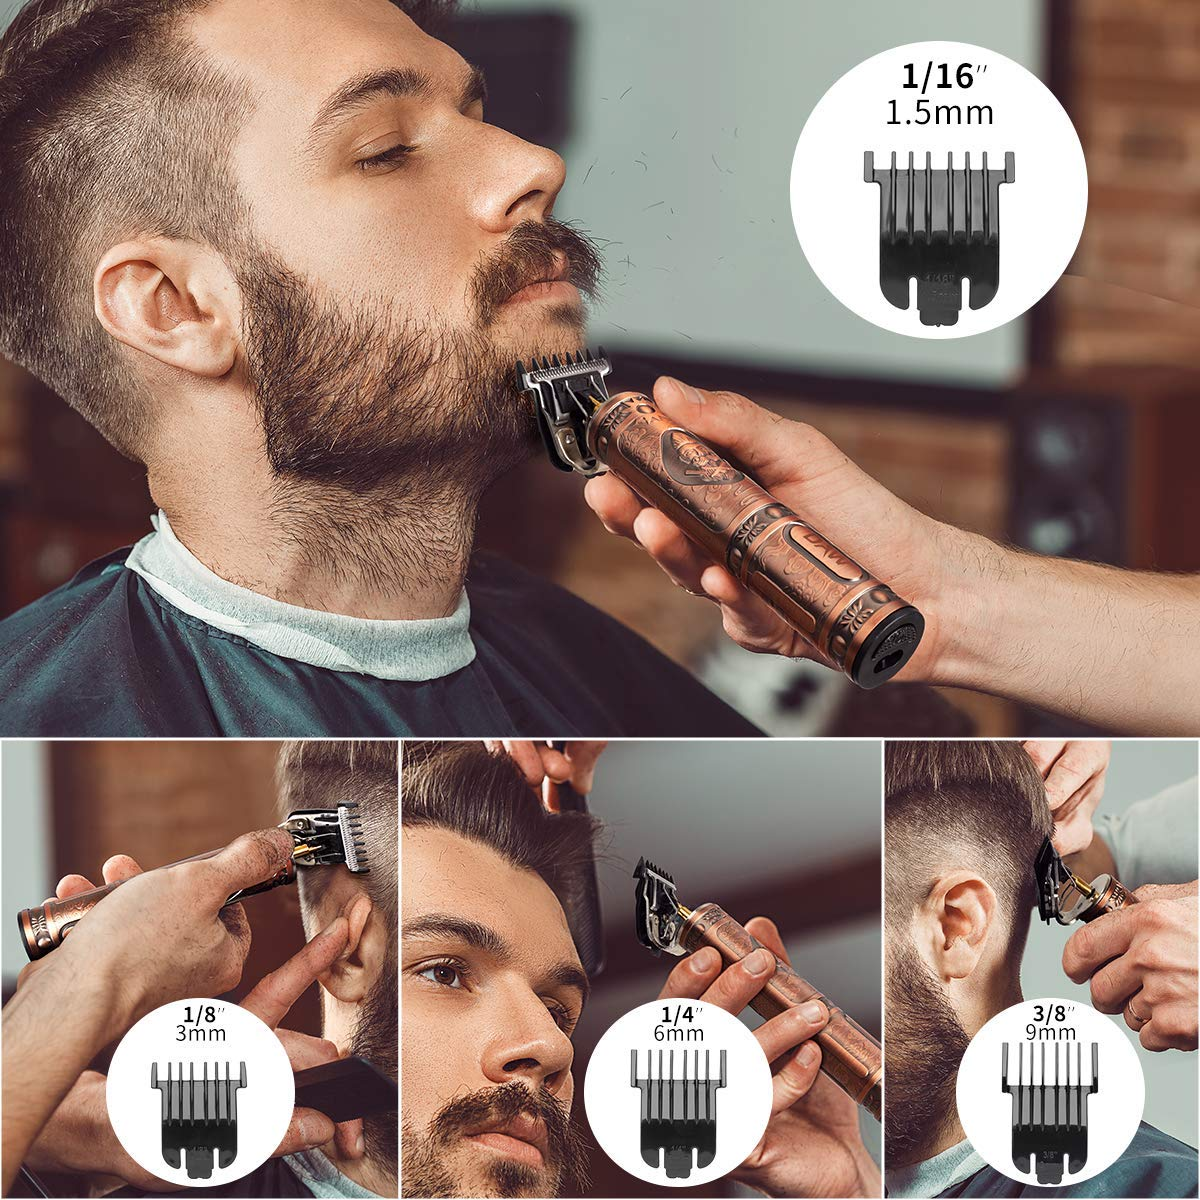 (Save 30% OFF) 2021 New Rechargeable T-blade Men's Hair Clipper